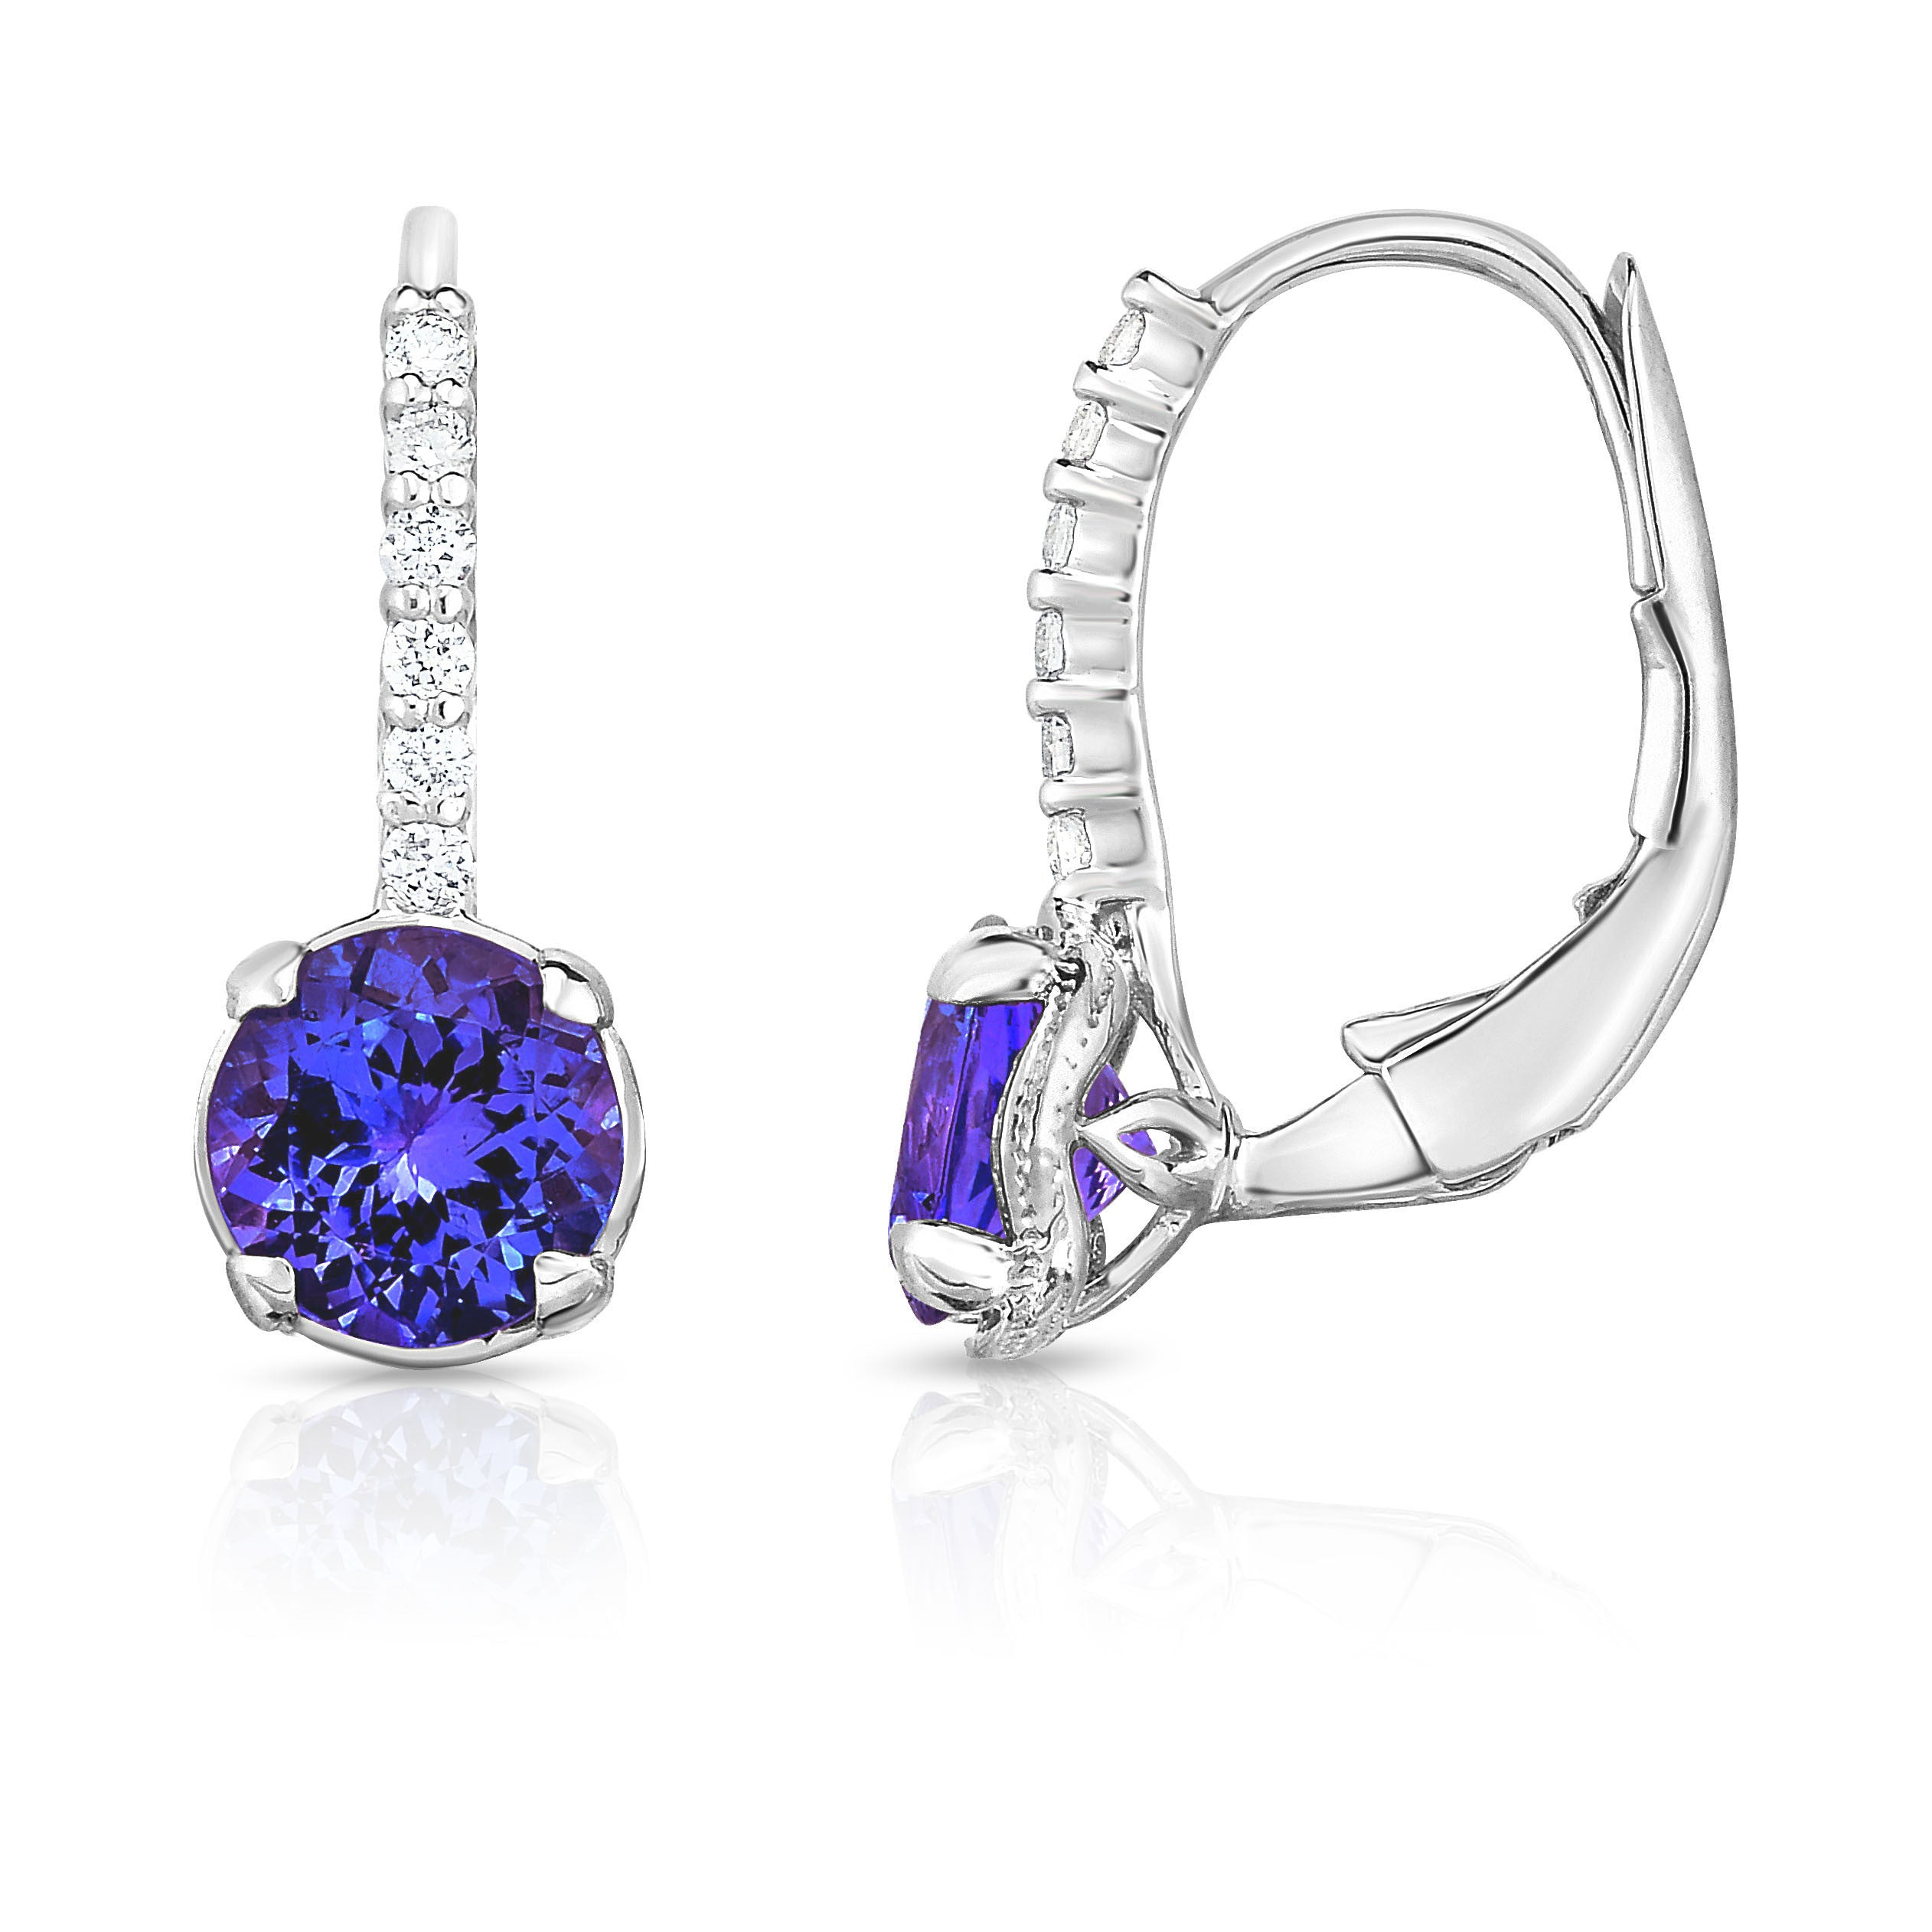 free today tdw silver diamond miadora shipping sterling overstock product earrings jewelry watches tanzanite infinity